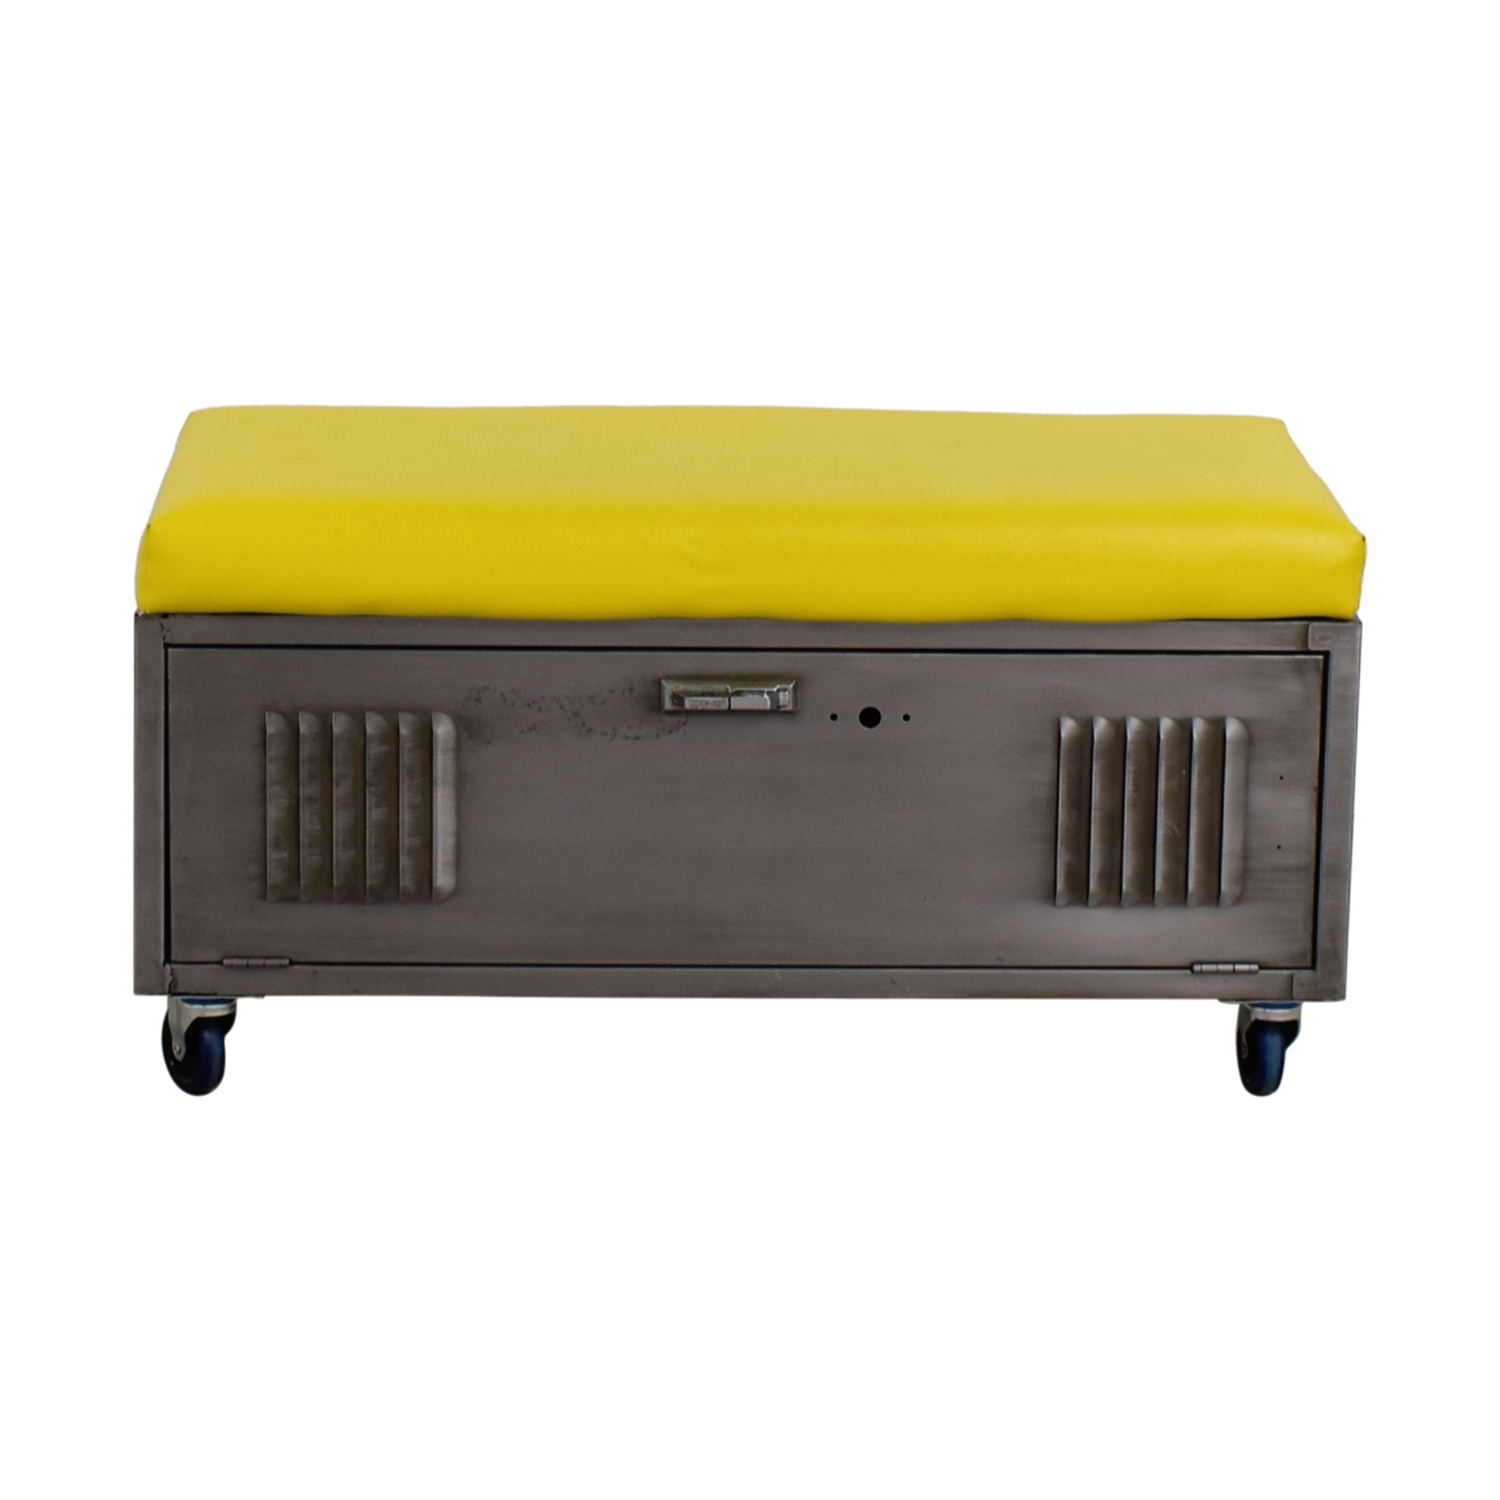 Custom Metal Locker Base Bench on Casters with Yellow Leather Cushion on sale